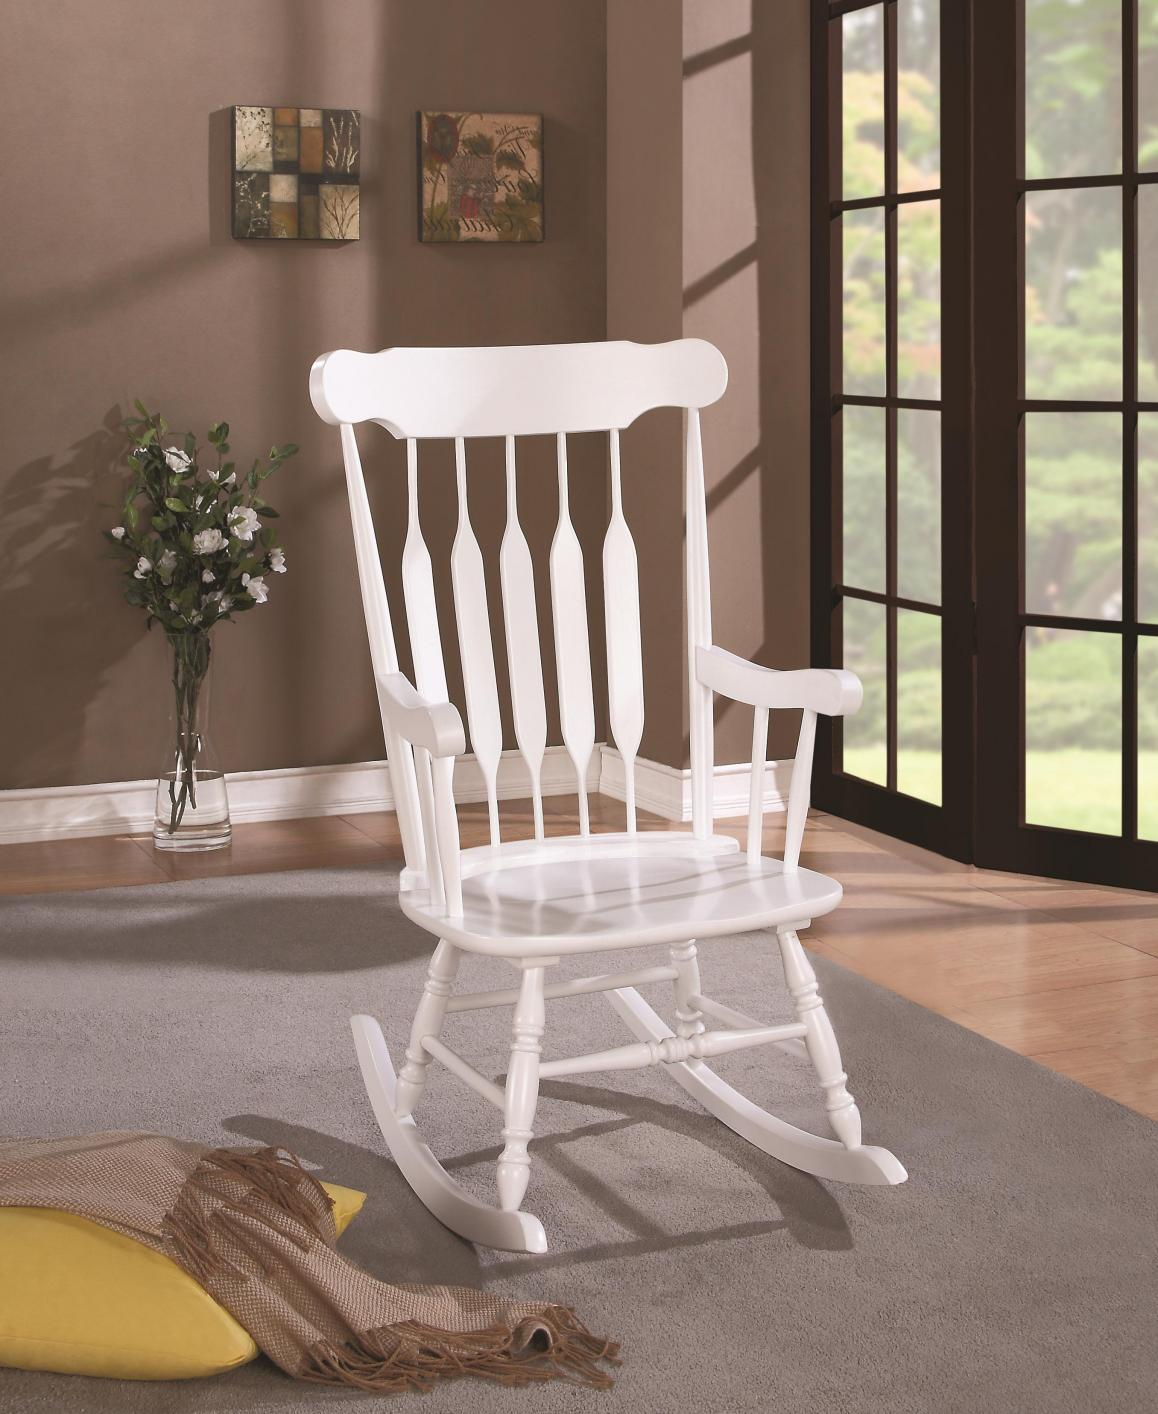 White Wood Rocking Chair White Wood Rocking Chair Steal A Sofa Furniture Outlet